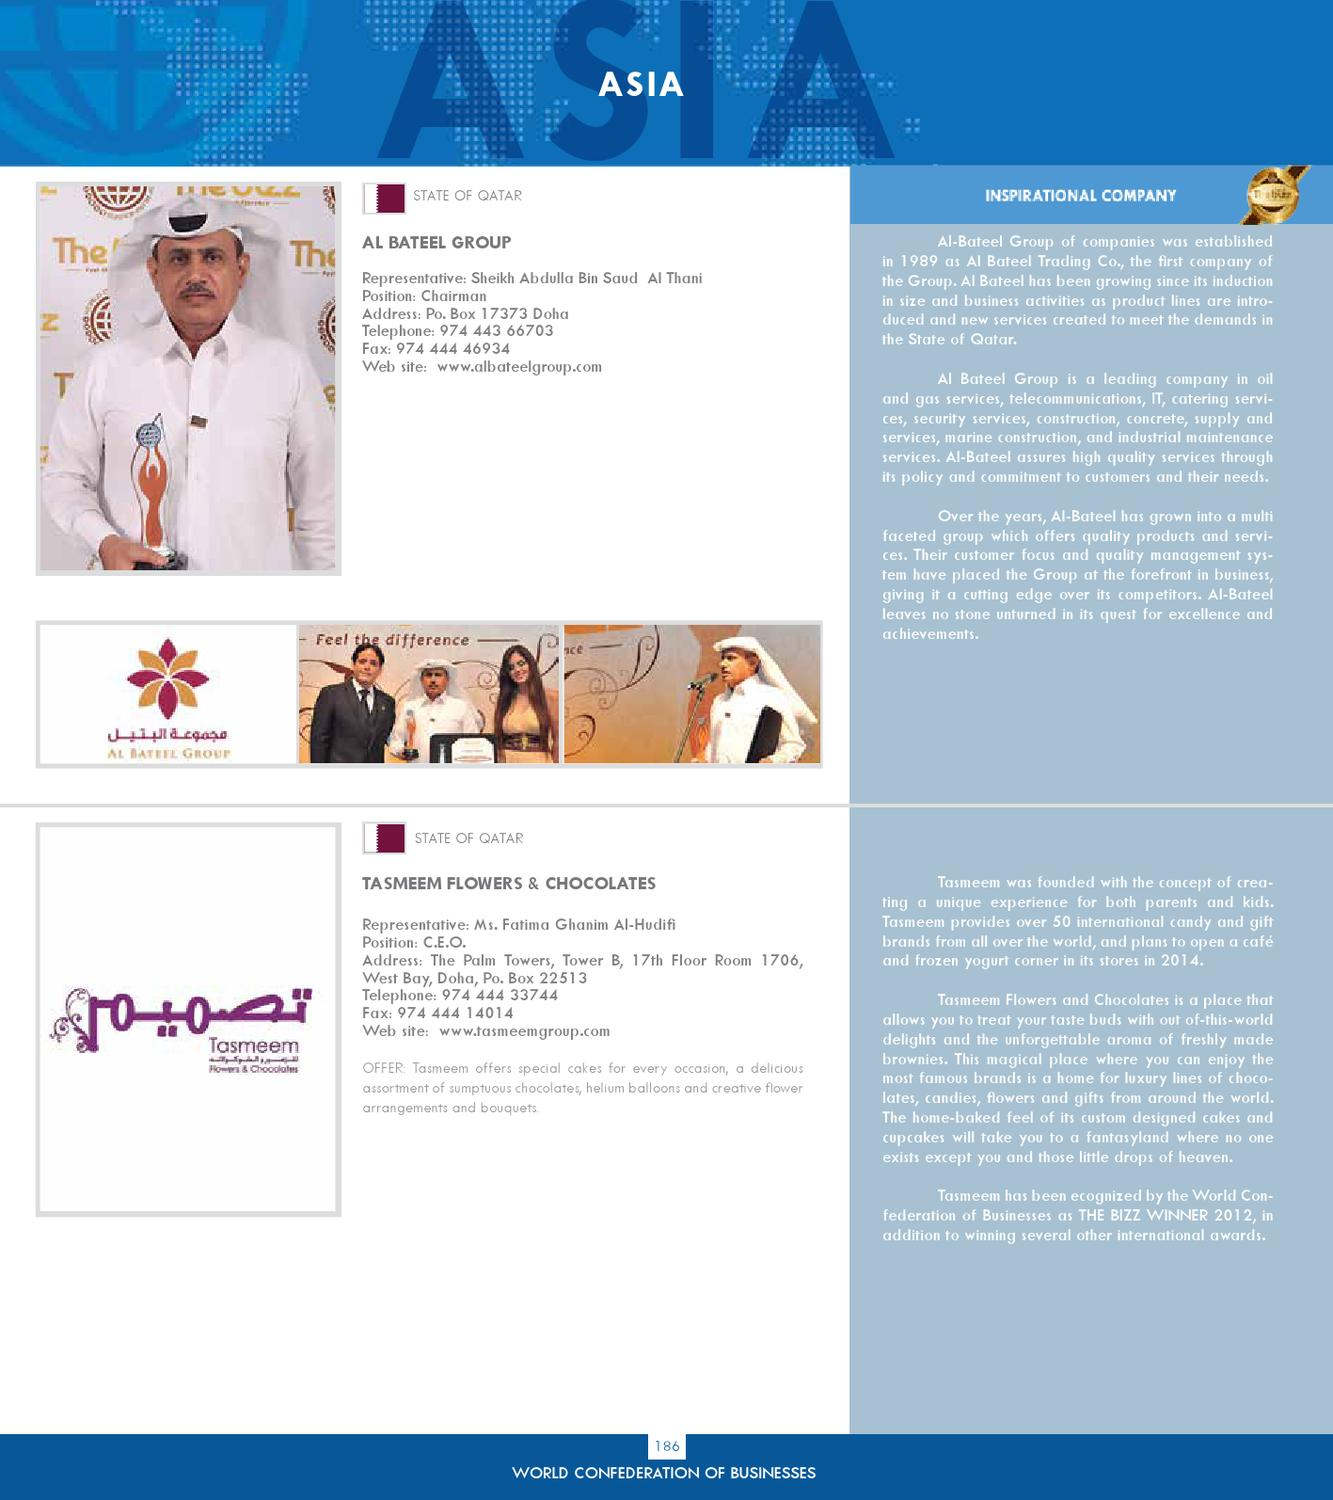 Business Directory - 2012 by World Confederation of